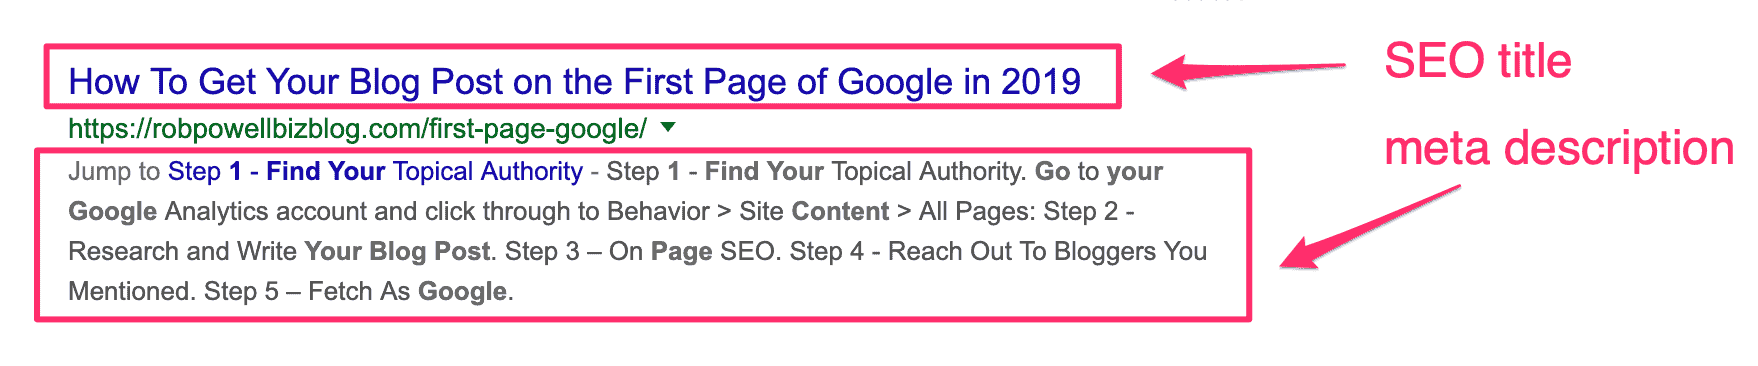 example of seo title and meta description